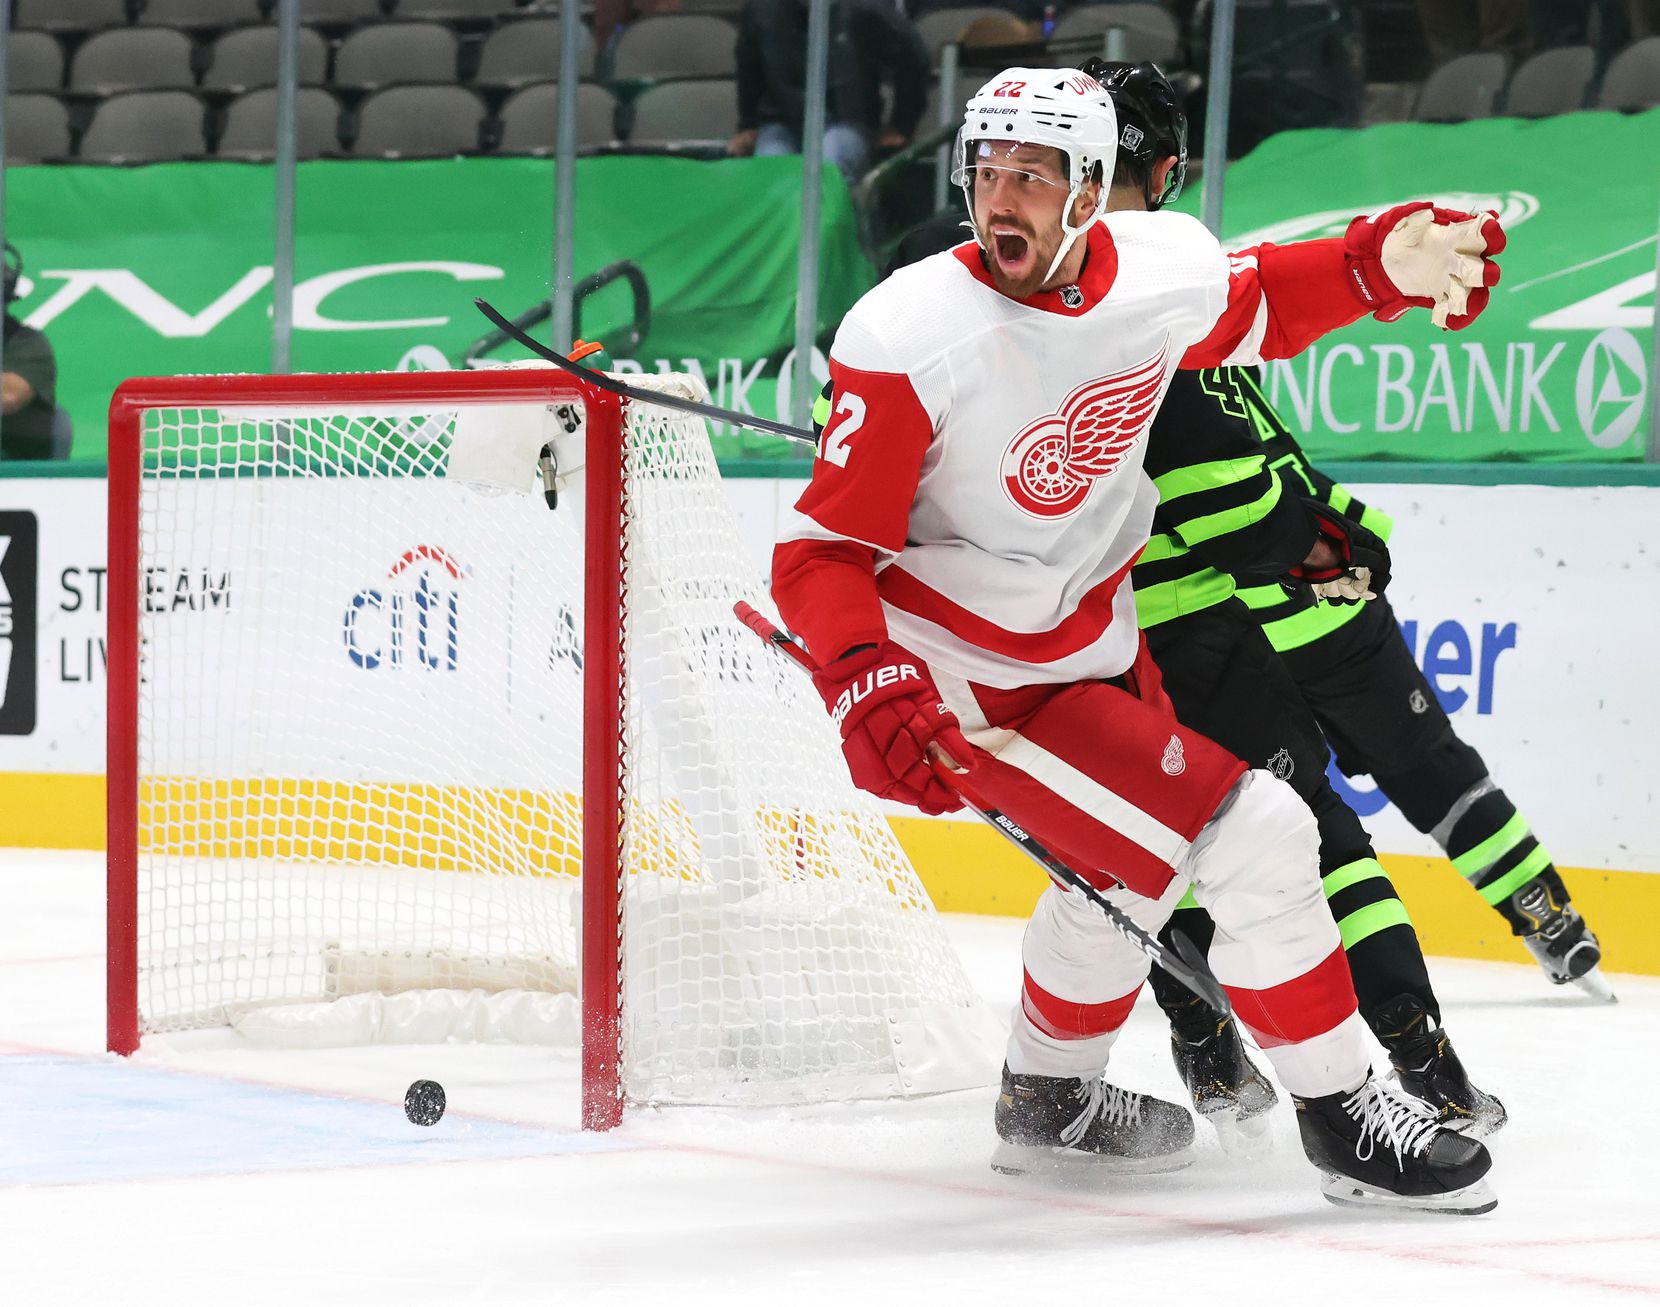 Detroit Red Wings defenseman Patrik Nemeth (22) reacts after Dallas Stars center Joe Pavelski (16) scored during the first period of play at American Airlines Center on Thursday, January 28, 2021in Dallas. (Vernon Bryant/The Dallas Morning News)